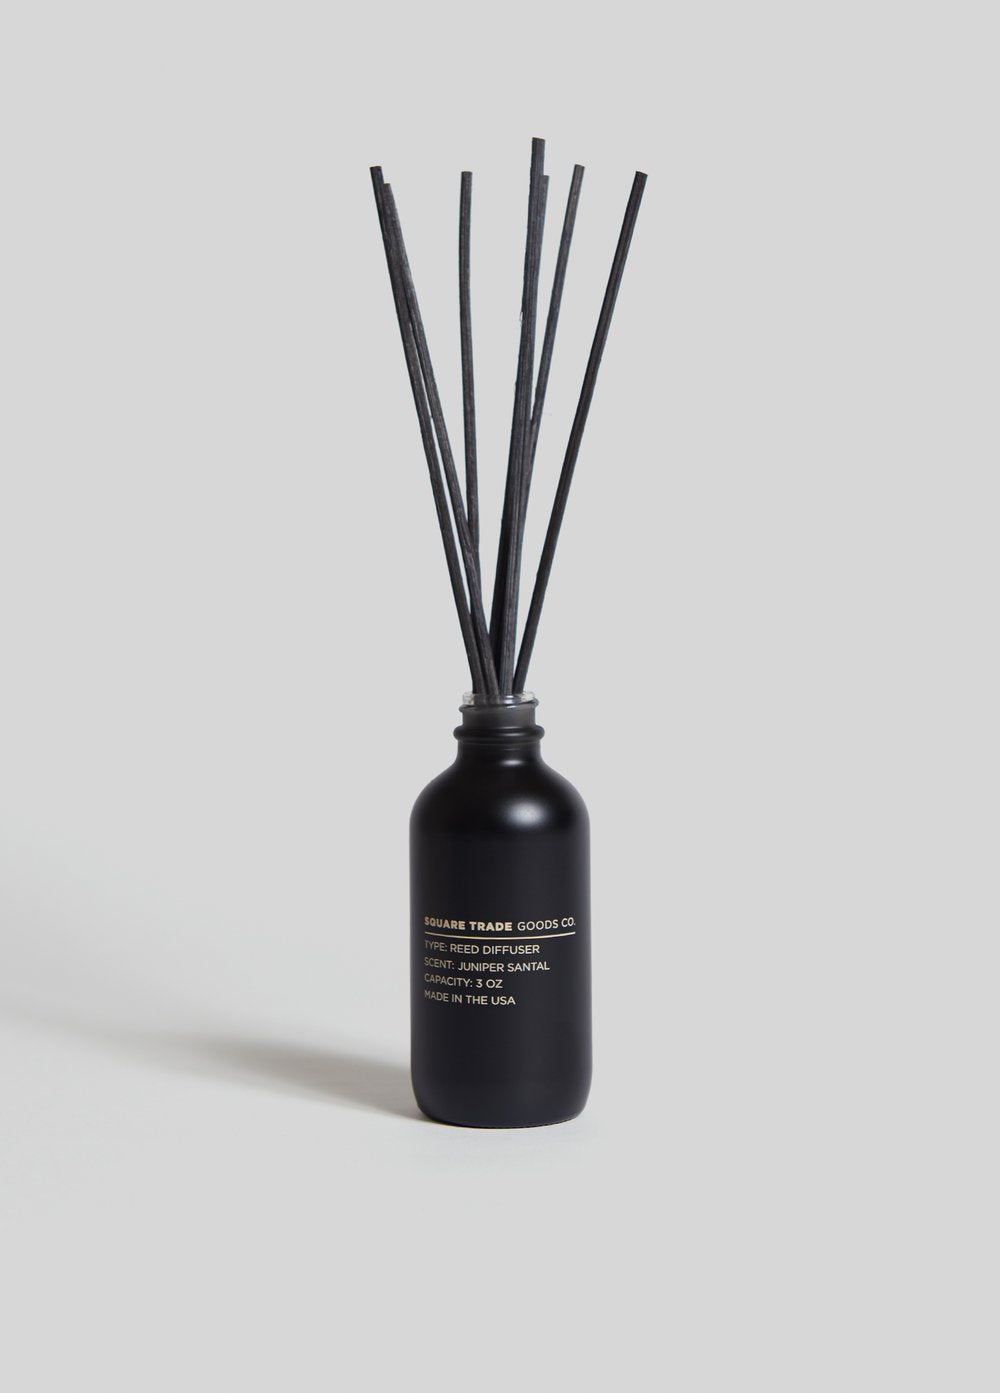 Juniper Santal Reed Diffuser